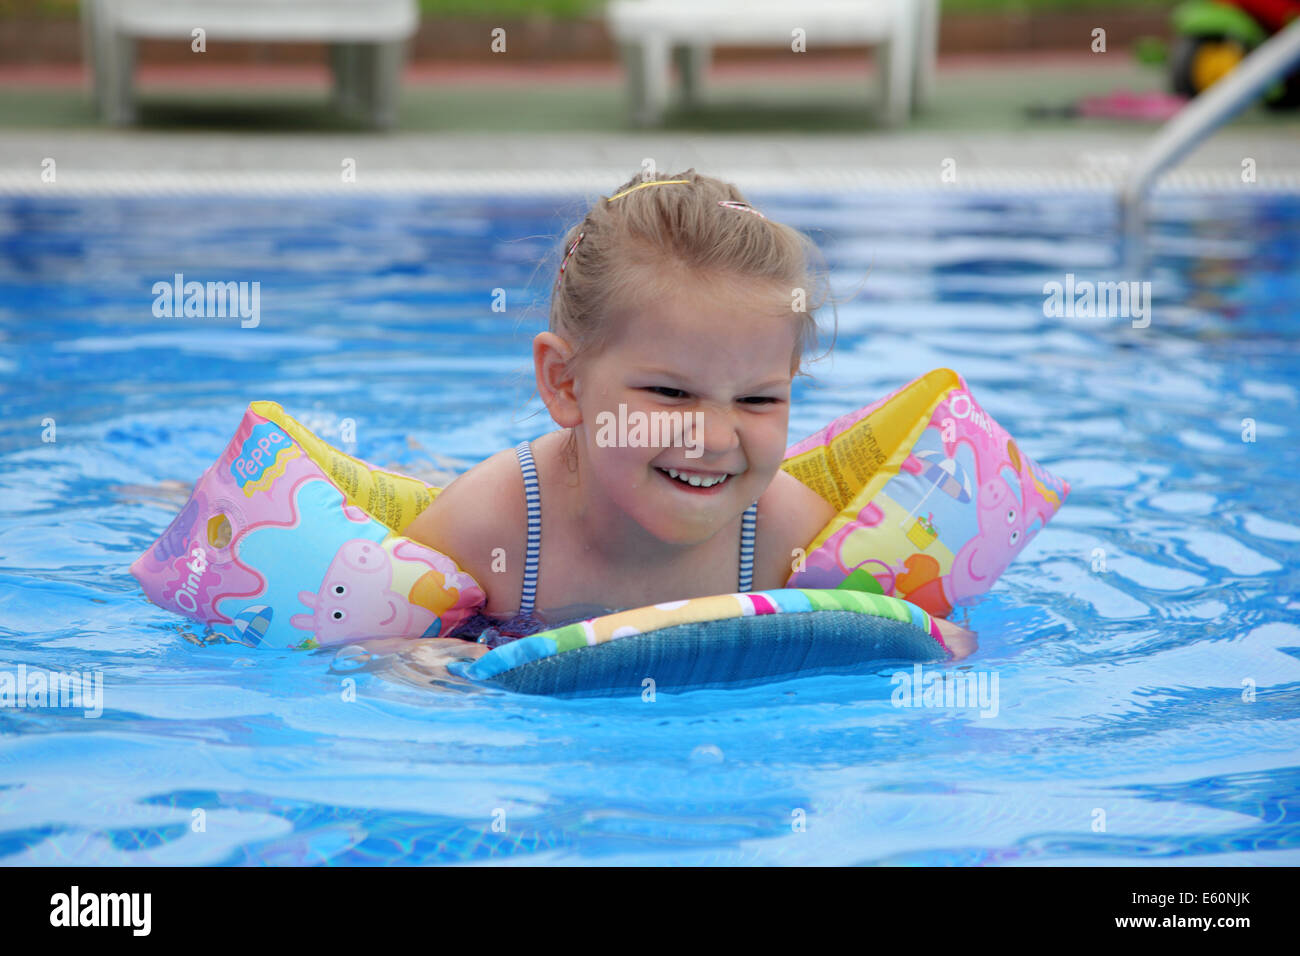 peppa pig stock photos peppa pig stock images alamy little girl swimming board and water wings in pool stock image